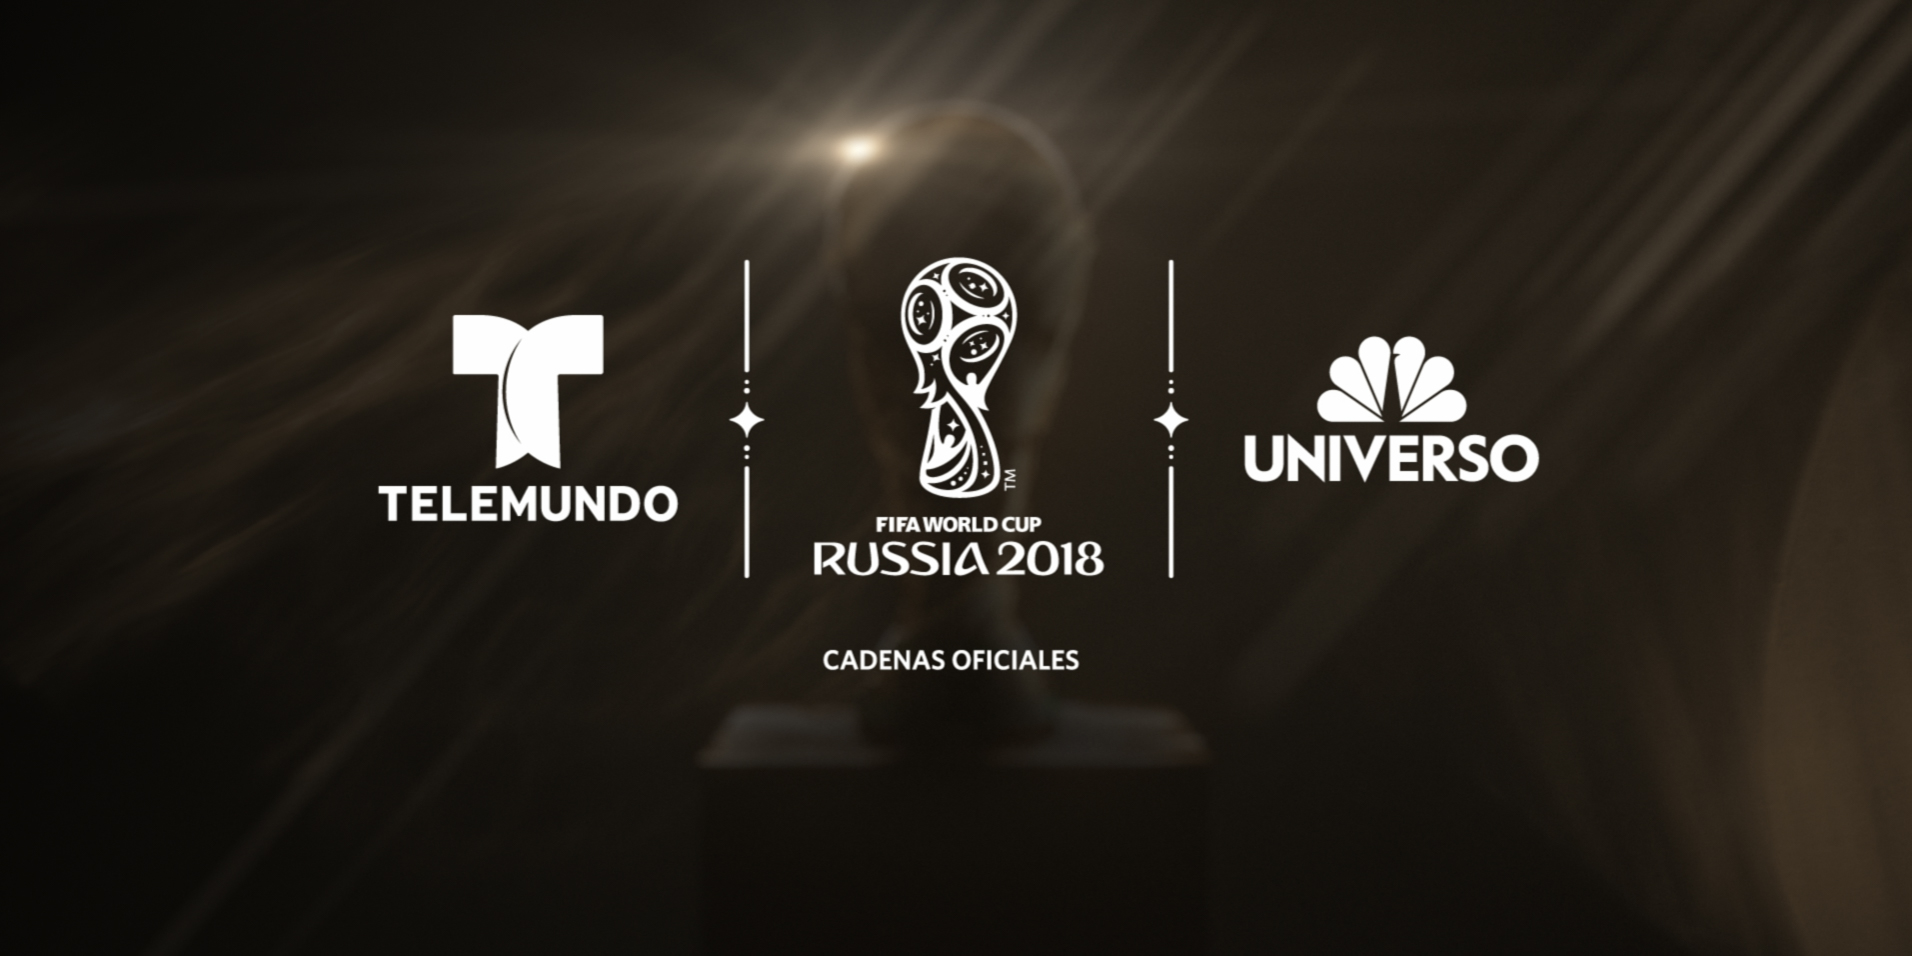 Telemundo | FIFA World Cup